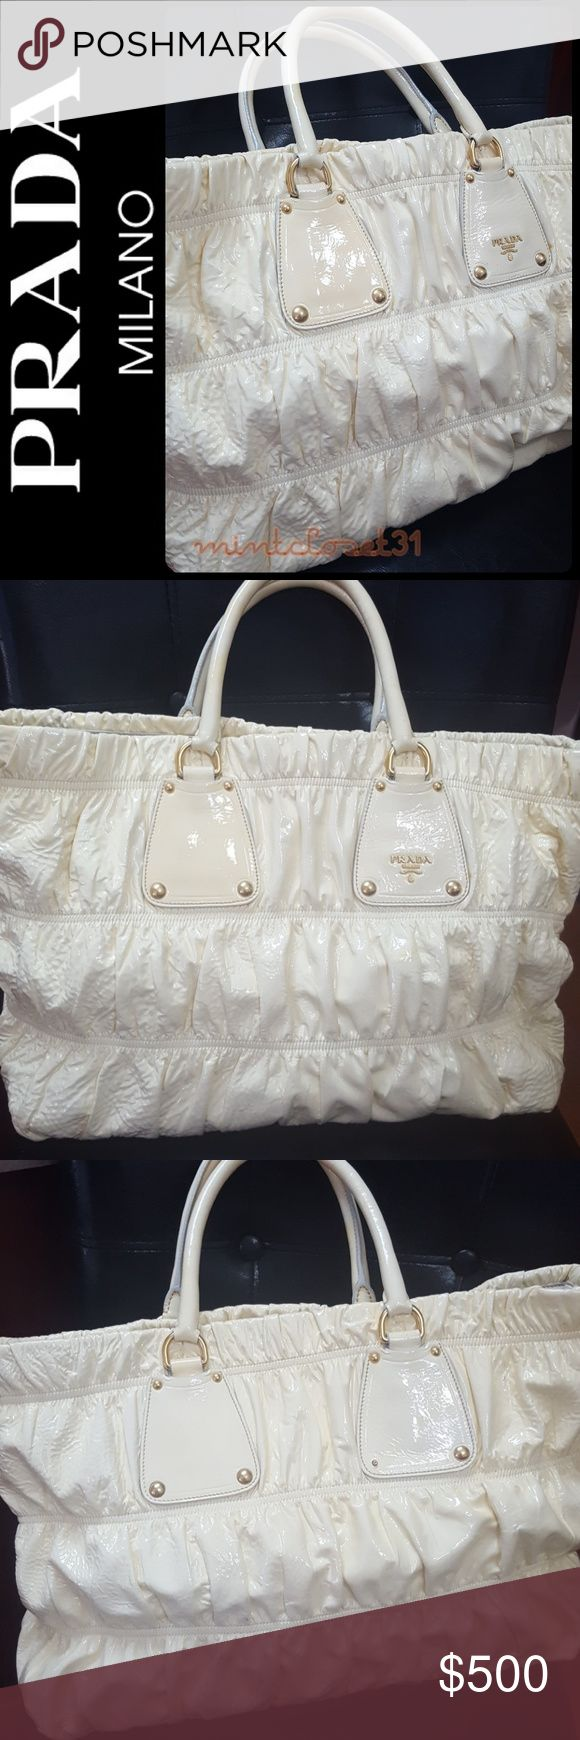 Prada Italy Patent Leather Tote Bag Prada Designer Handbag in Gorgeous Patent Leather Tote with Faint Yellow Shade! Features the Iconic Prada logo Emblem Adornment on Front! Crafted from Prada Signature Luxurious Gaufre Collection! Gold Tone Hardware with